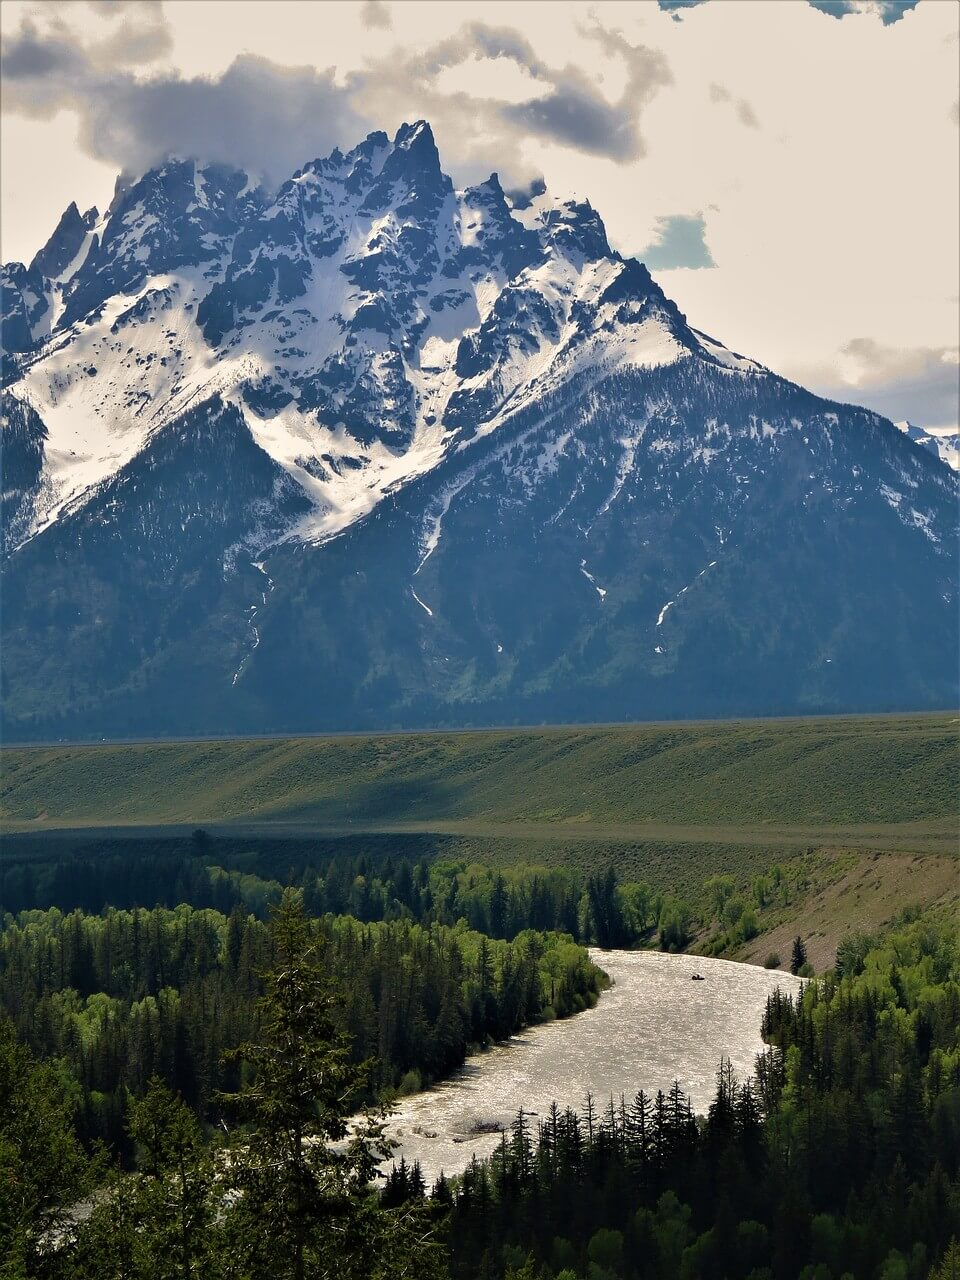 One of the main reasons to explore Snake River is the stunning scenery!